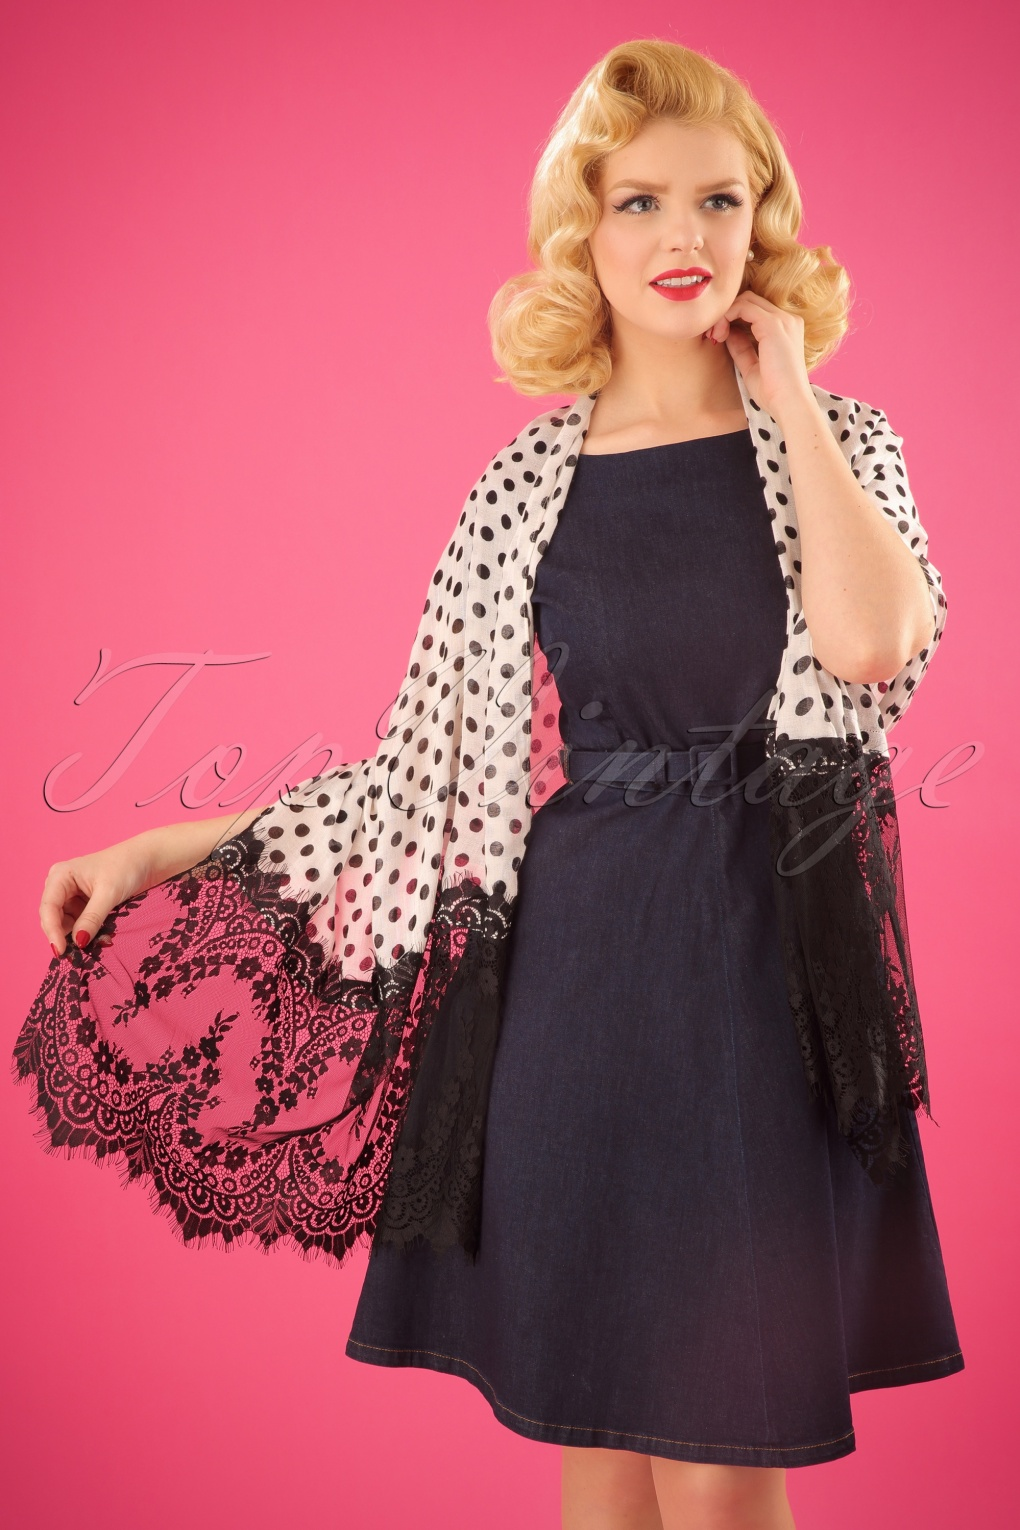 Vintage Scarf Styles -1920s to 1960s 50s Rowena Scarf in Black and White £26.24 AT vintagedancer.com